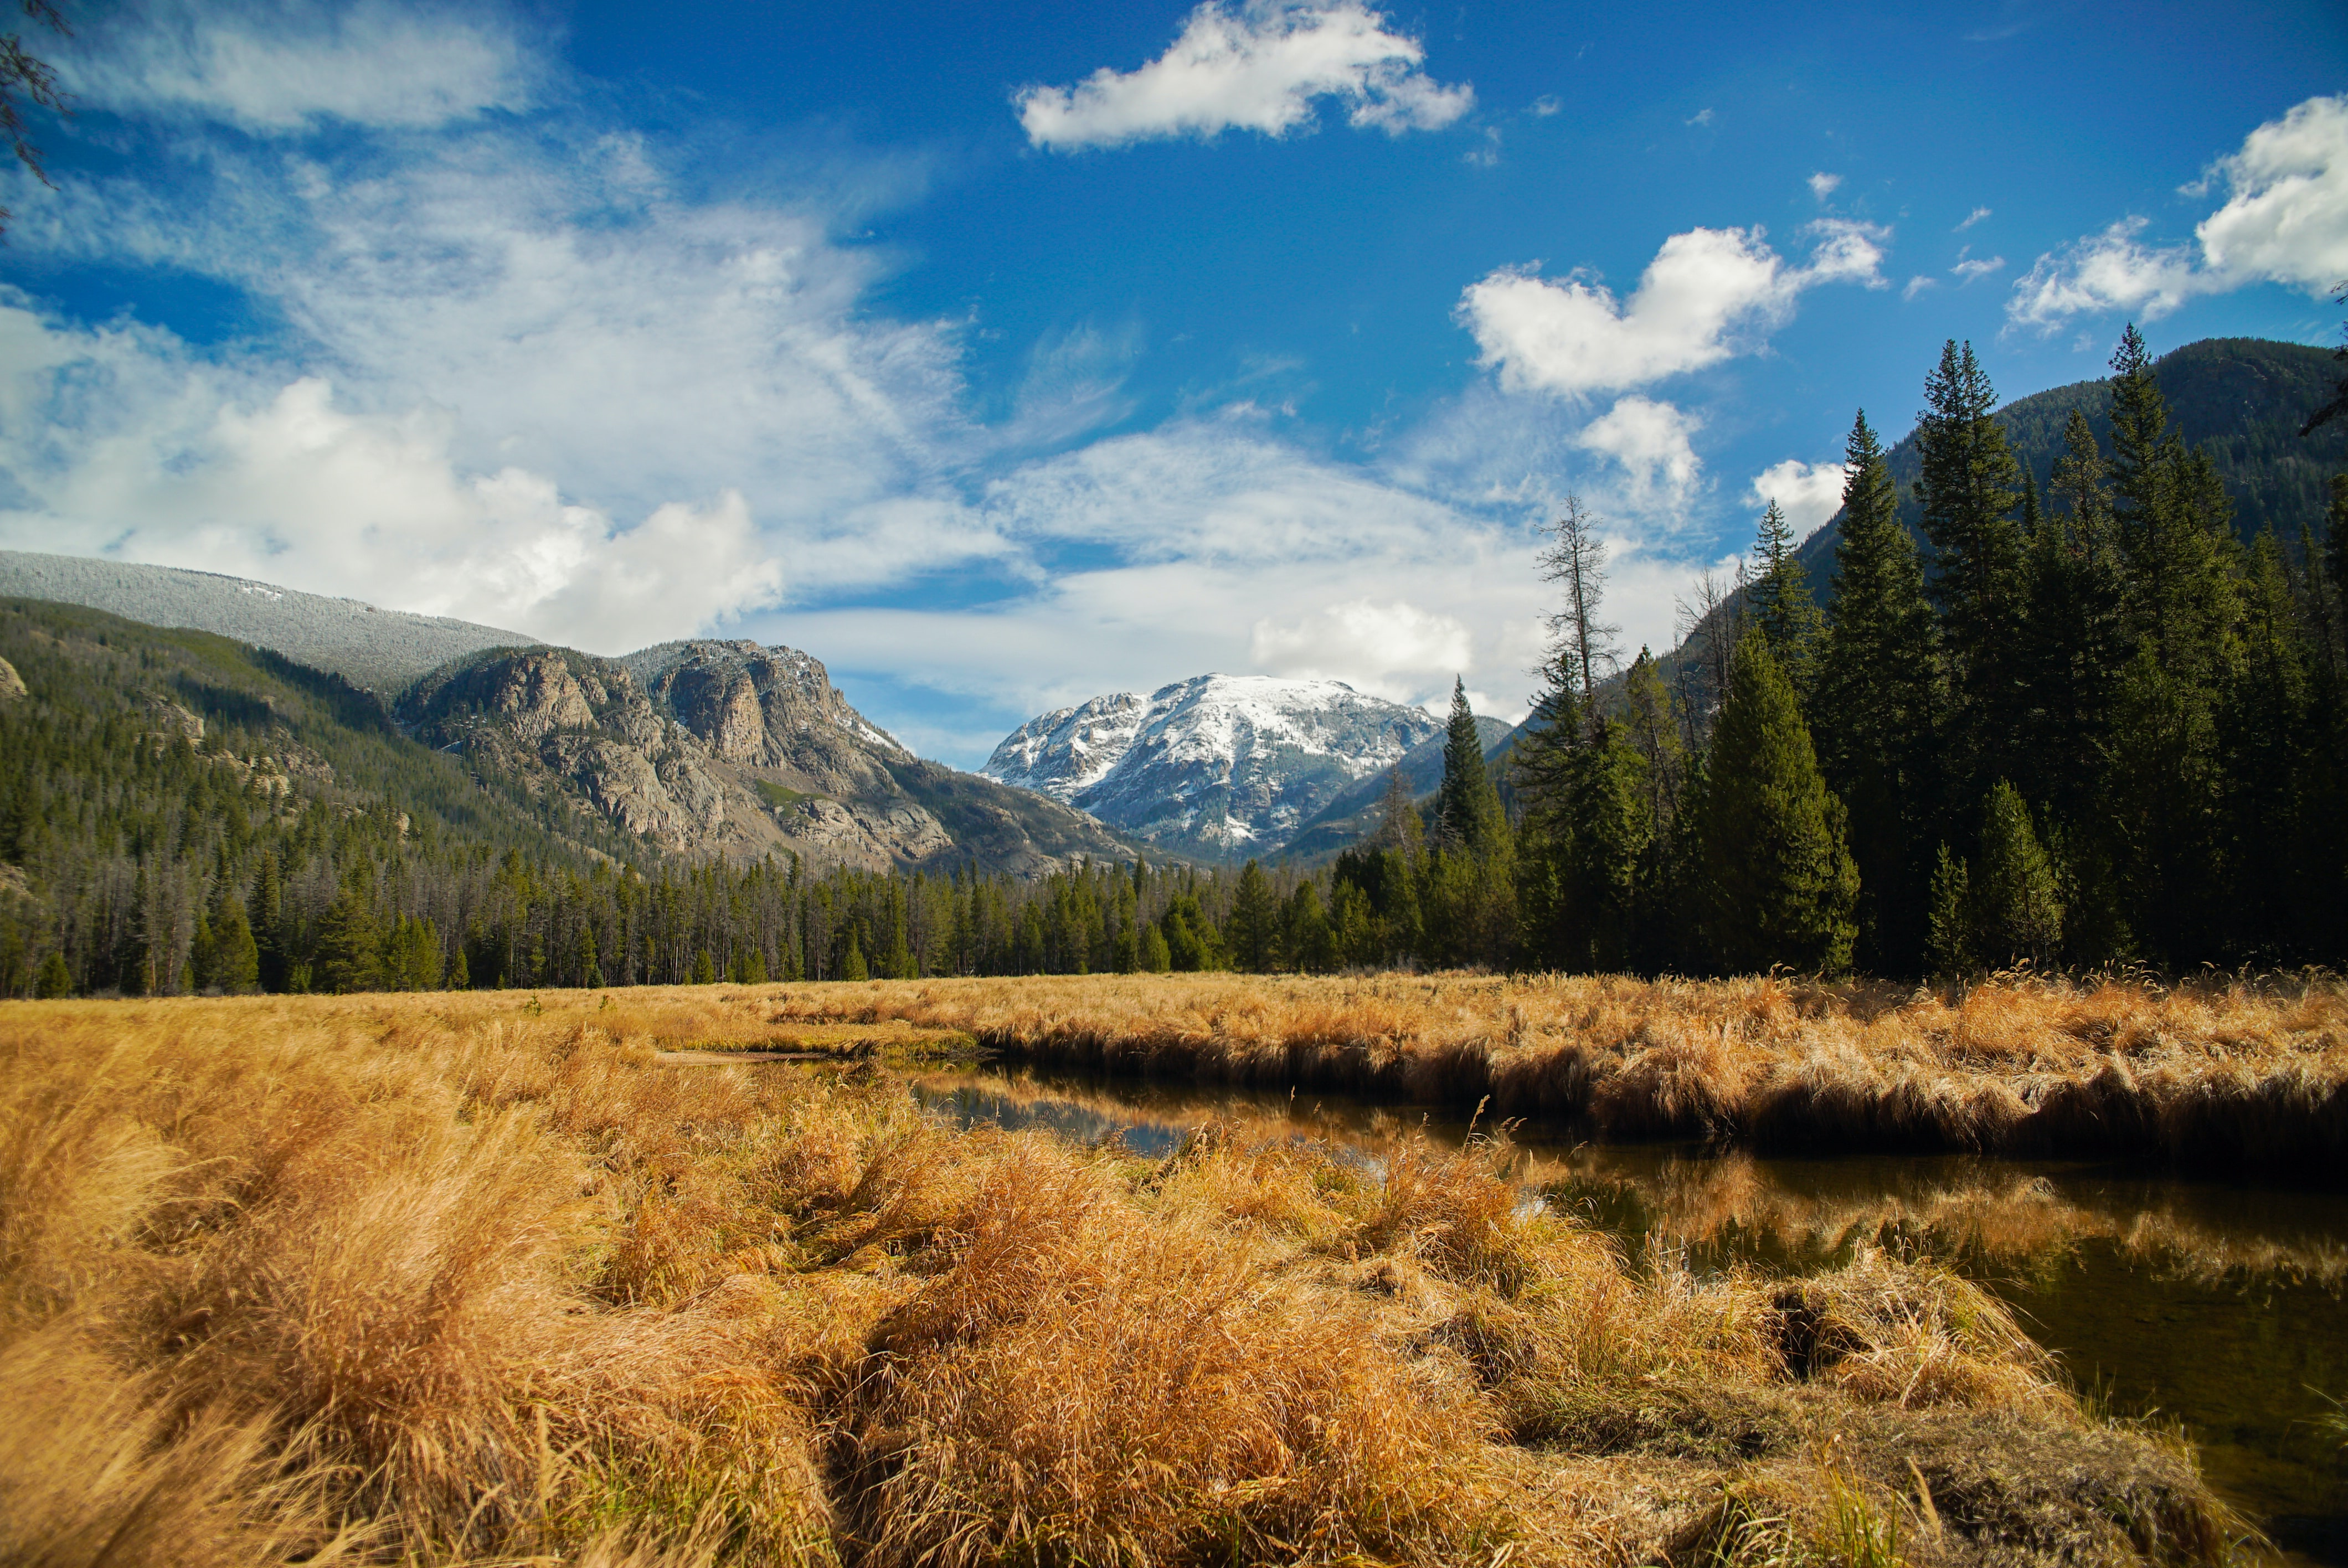 A golden meadow with an evergreen forest and snowy mountains at the back